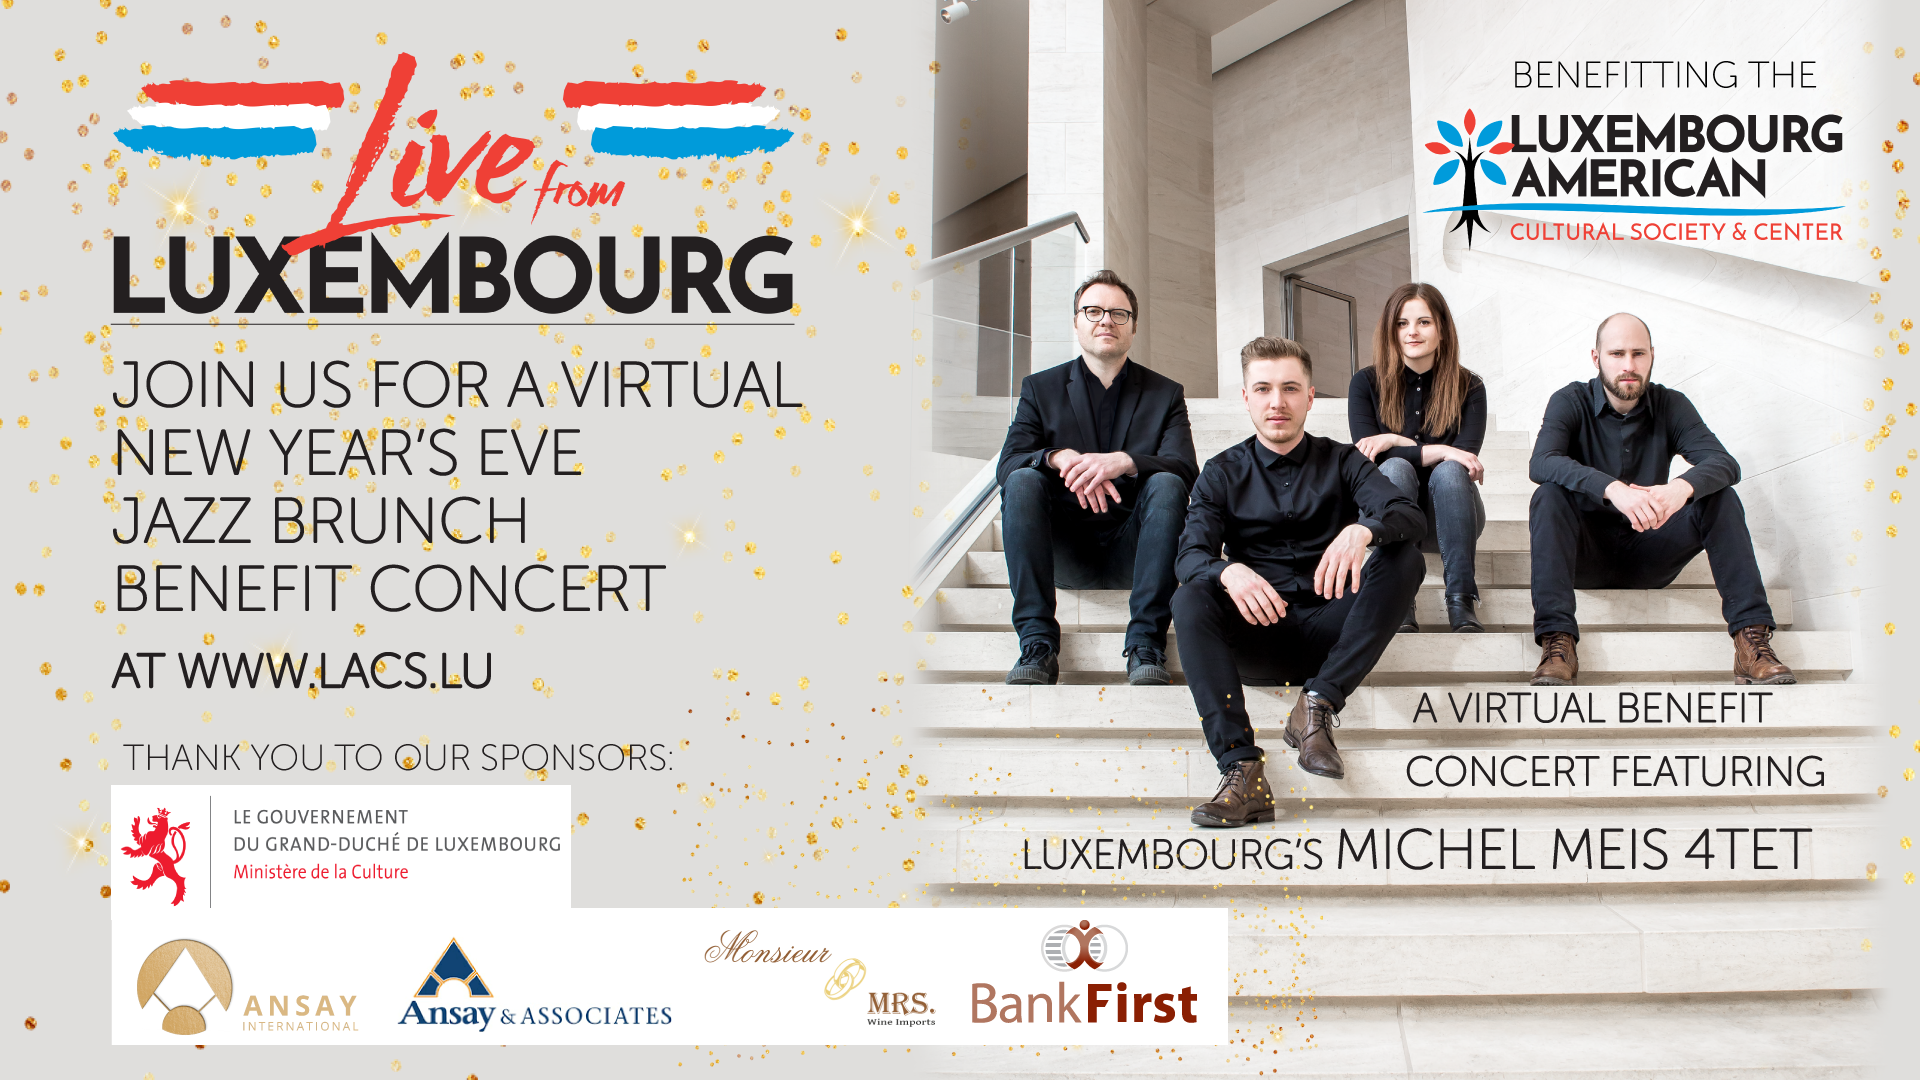 LACS to end the year on a high note with NYE Virtual Jazz Brunch featuring Luxembourg's Michel Meis 4tet